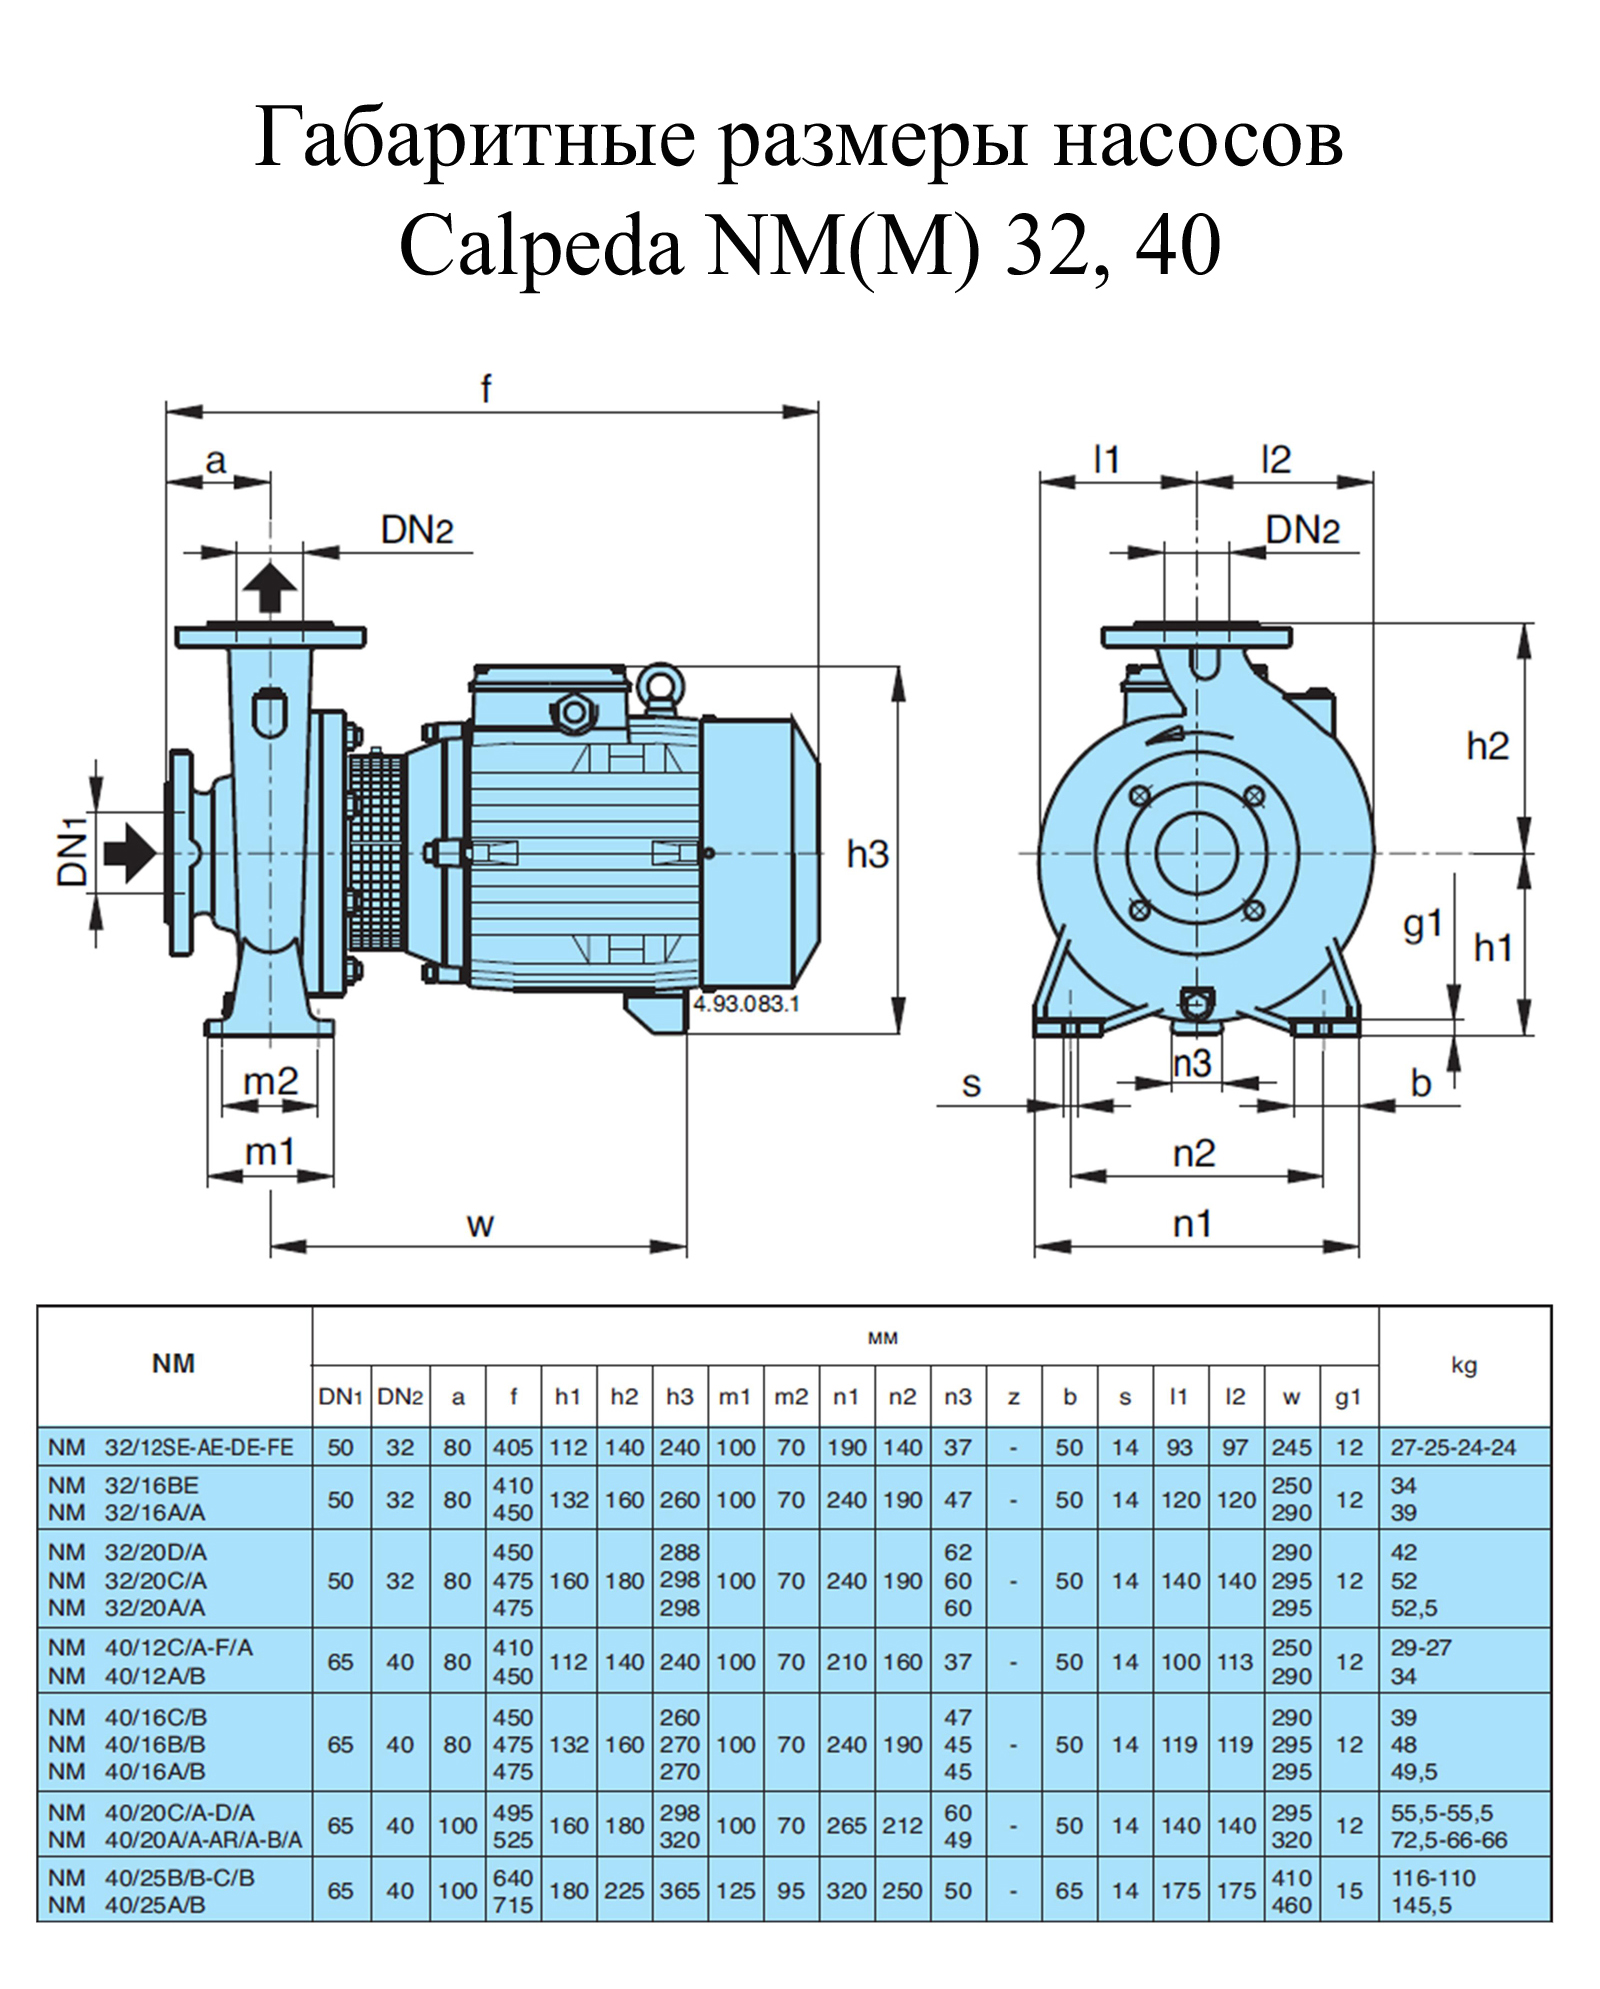 ����� ������������� Calpeda NMM 32/16BE (60500121000)